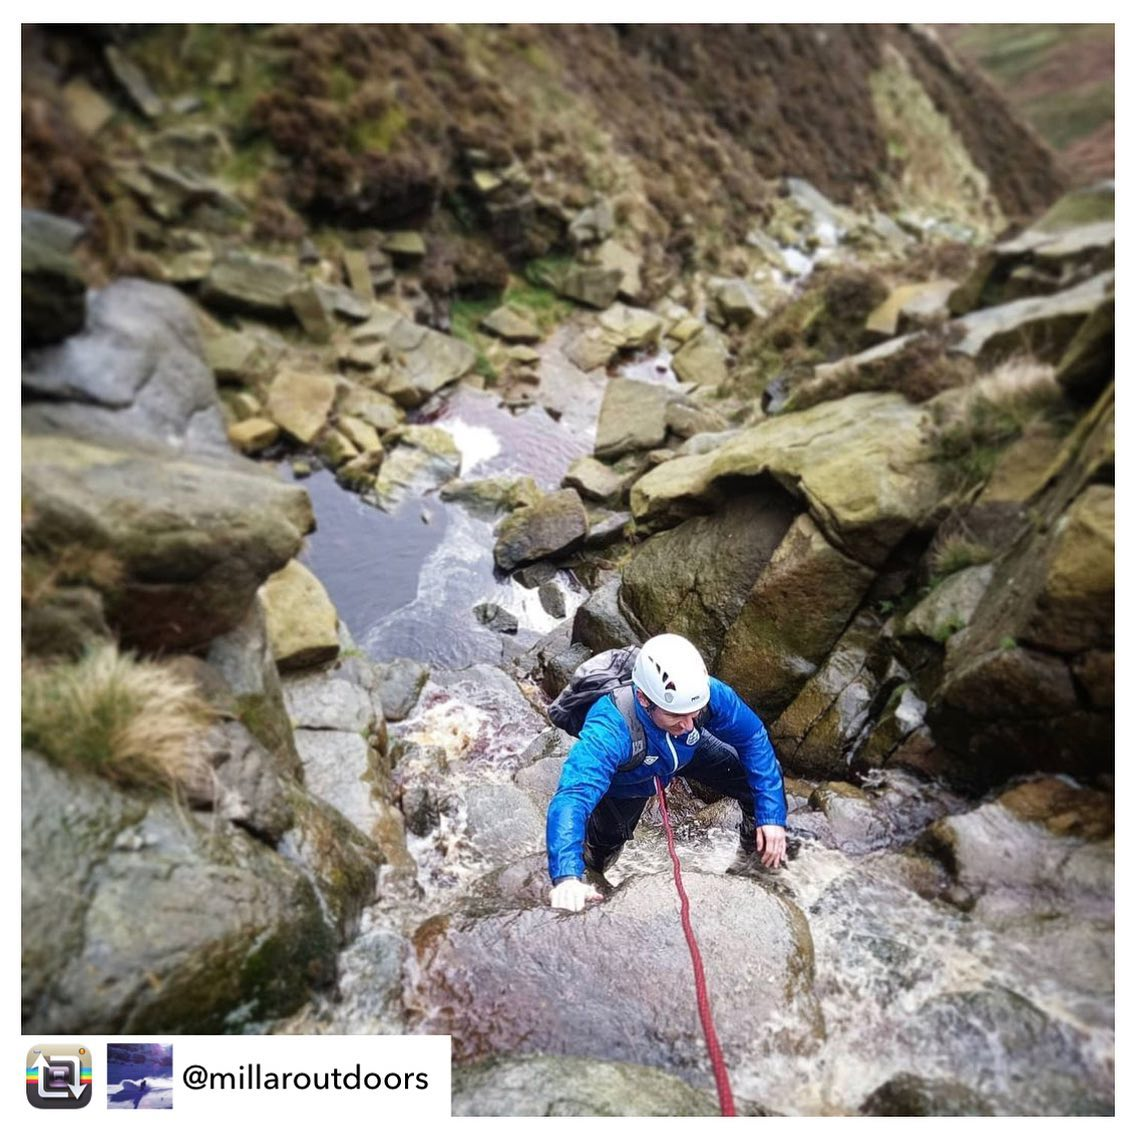 Repost from @millaroutdoors mountain adventure scramble at Crowden Clough on Saturday, all bookings are available through the link in our bio #wildernessdevelopment ⛰🥾⛰  Saturdays scrambling up Kinder's cloughs are Saturdays well spent.   The days are getting shorter but you can still cram in a lot of adventure before dark.  #hiking #scramble #scrambling #hillwalking #randonnée #walking #hills #climbing #outdoors #outdoorlife #peakdistrict #peakdistrictnationalpark #kinderscout #crowdenclough #derbyshire #outdoorfitness #fitness #dailyexercise